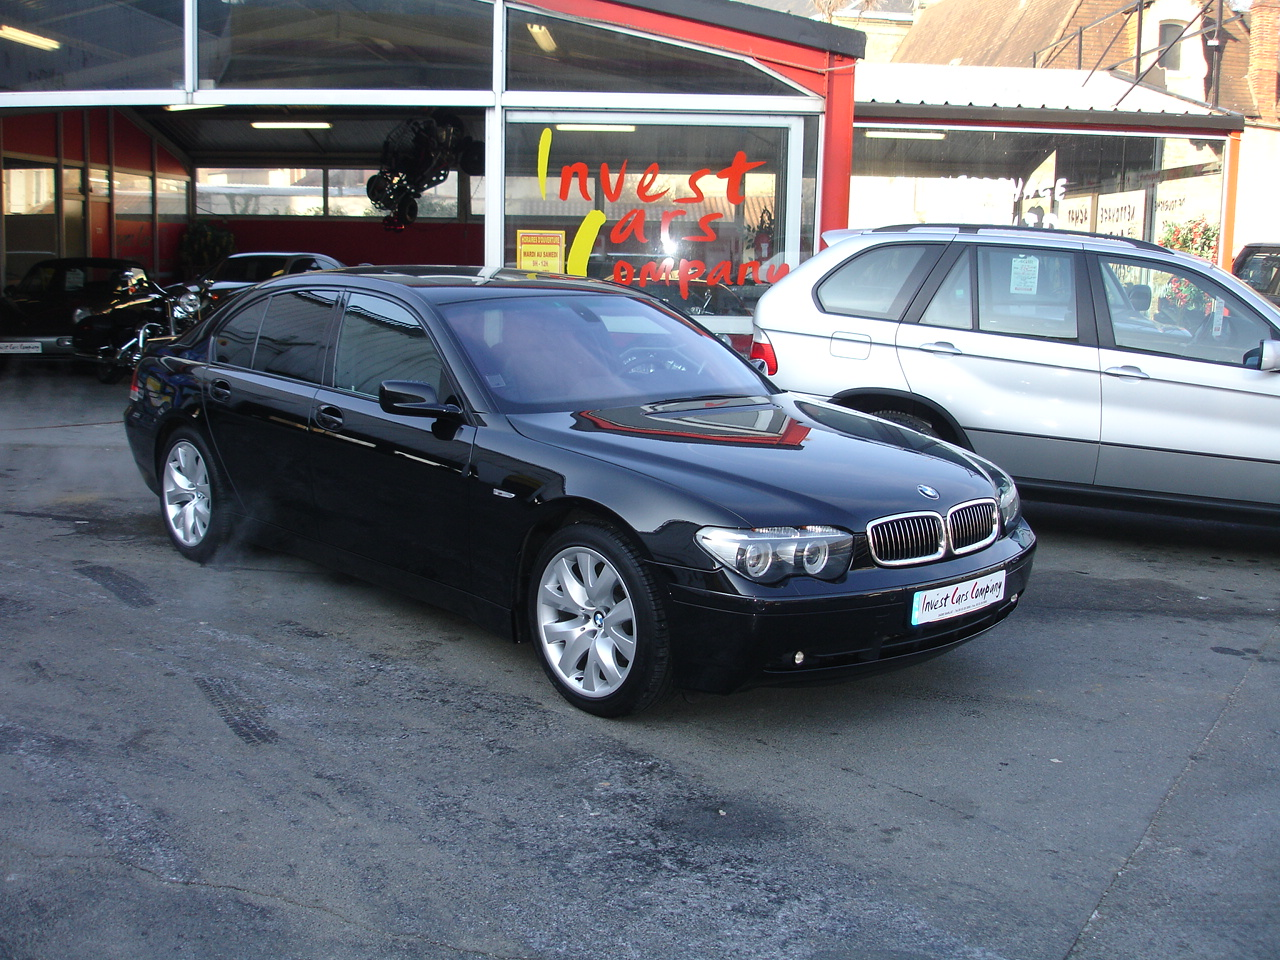 Bmw 730 2006 Review Amazing Pictures And Images Look At The Car Frm Module Location Photo 3